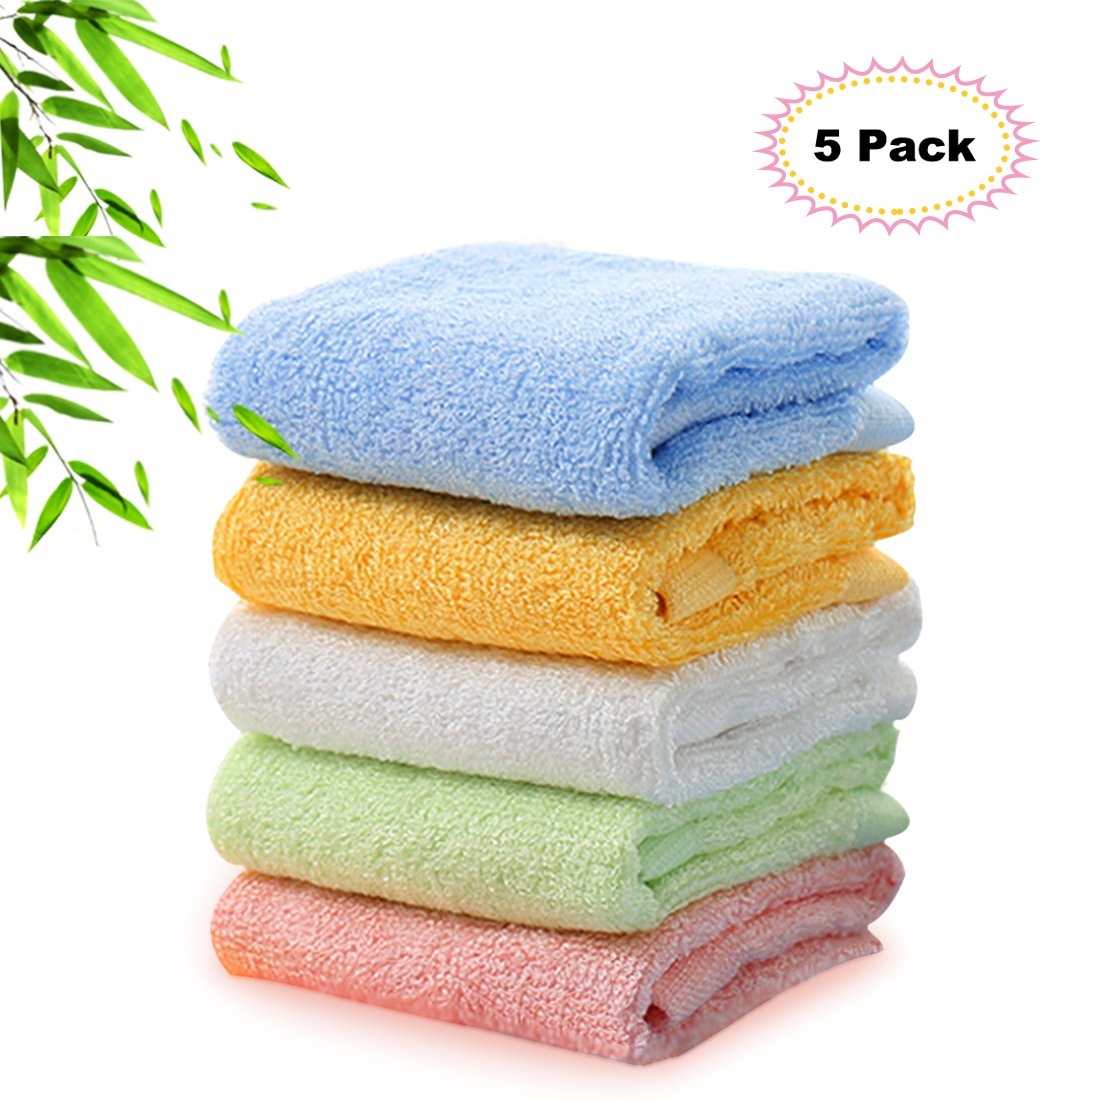 Kyapoo Bamboo Baby Washcloths Natural Organic Towels Ultra Soft Hypoallergenic Perfect for Sensitive Skin Reusable Wipes 5 Pack